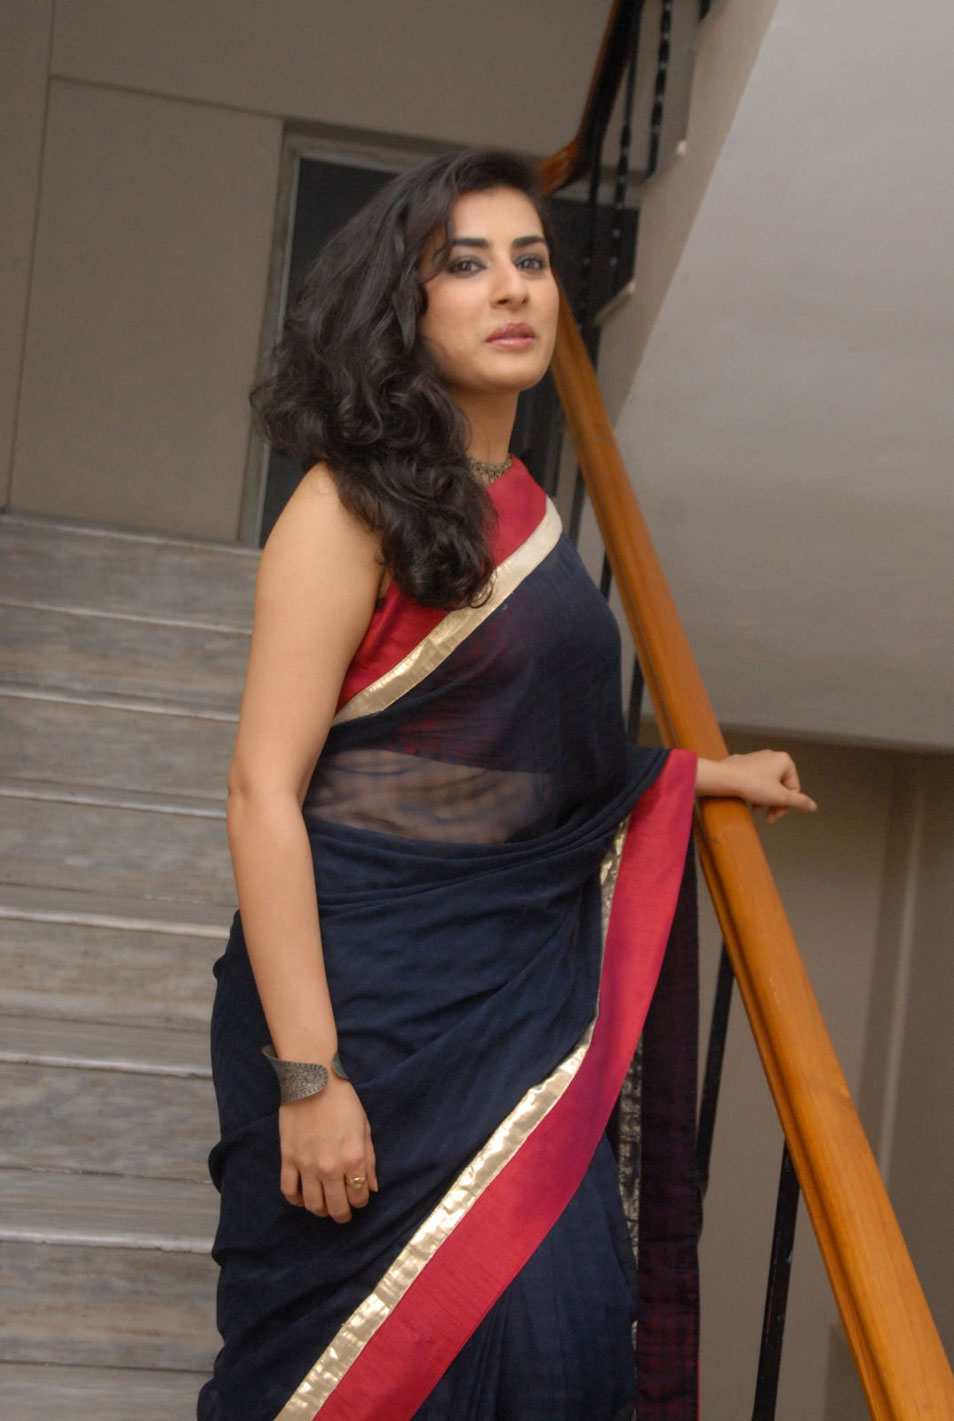 a9c949d046db53 Veda archana sastry full backless bikini blouse black transparent saree  boobs side view cleavage jpg 954x1421